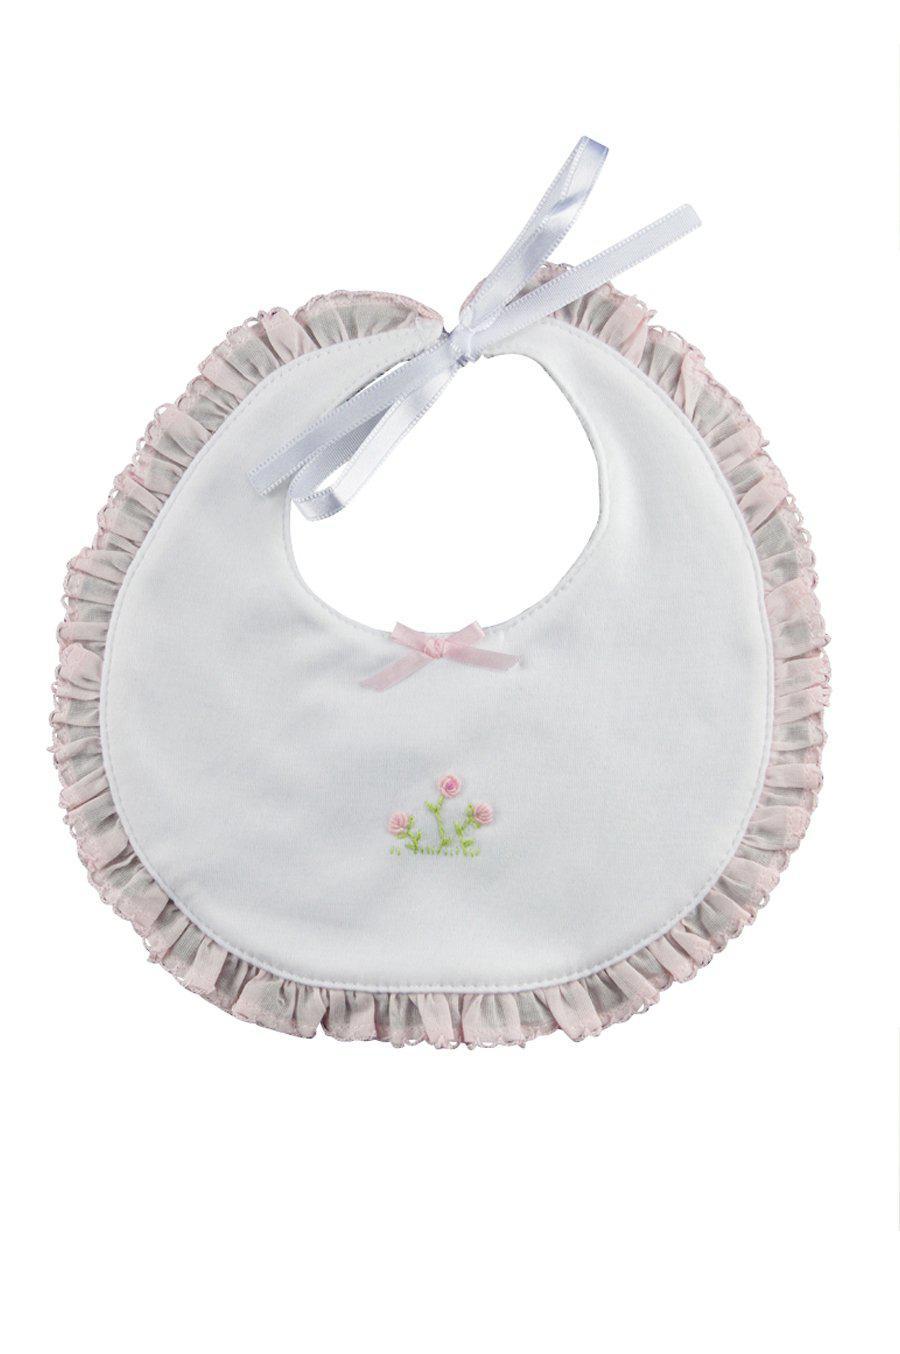 Rose Vine Bib with Pink Ruffle - Little Threads Inc. Children's Clothing